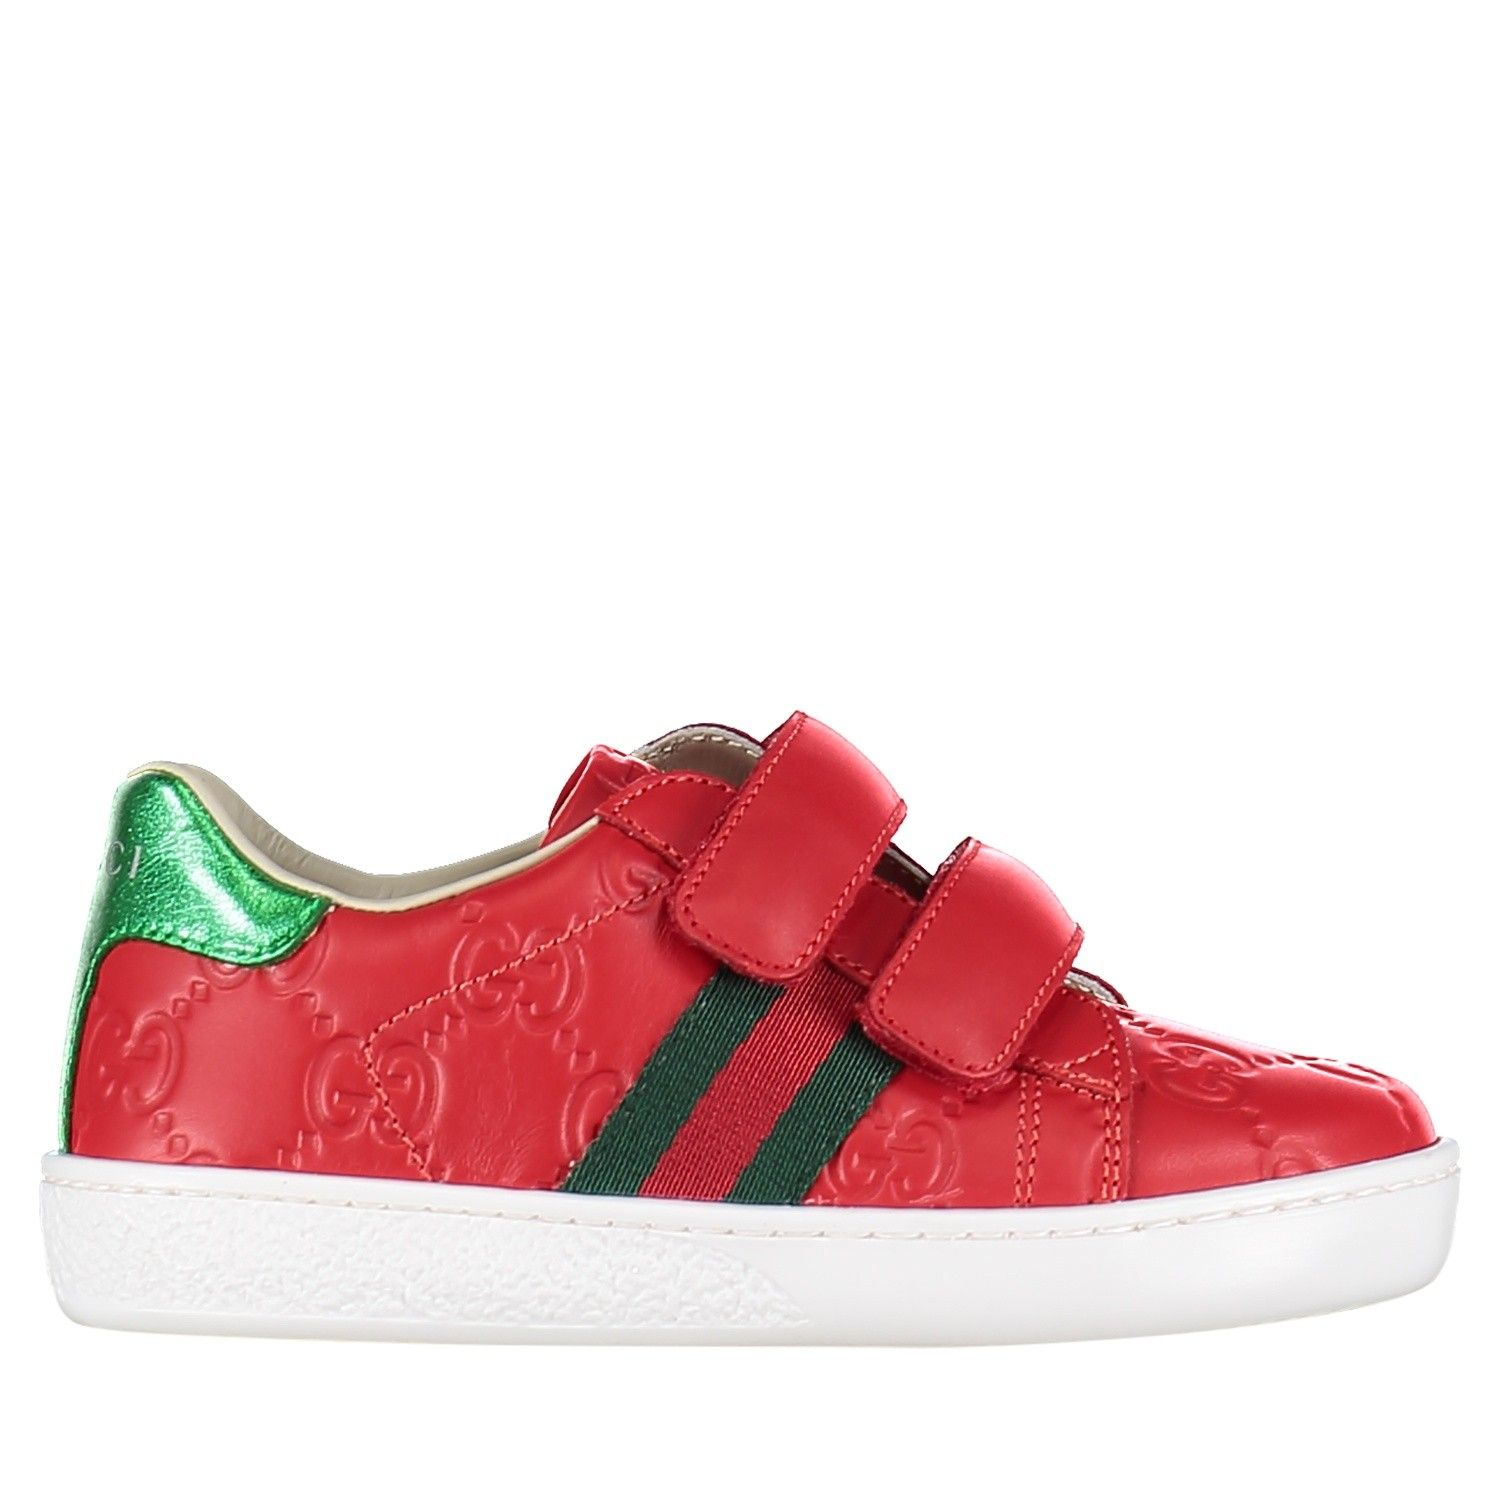 Picture of Gucci 455447 DF720 kids sneakers red